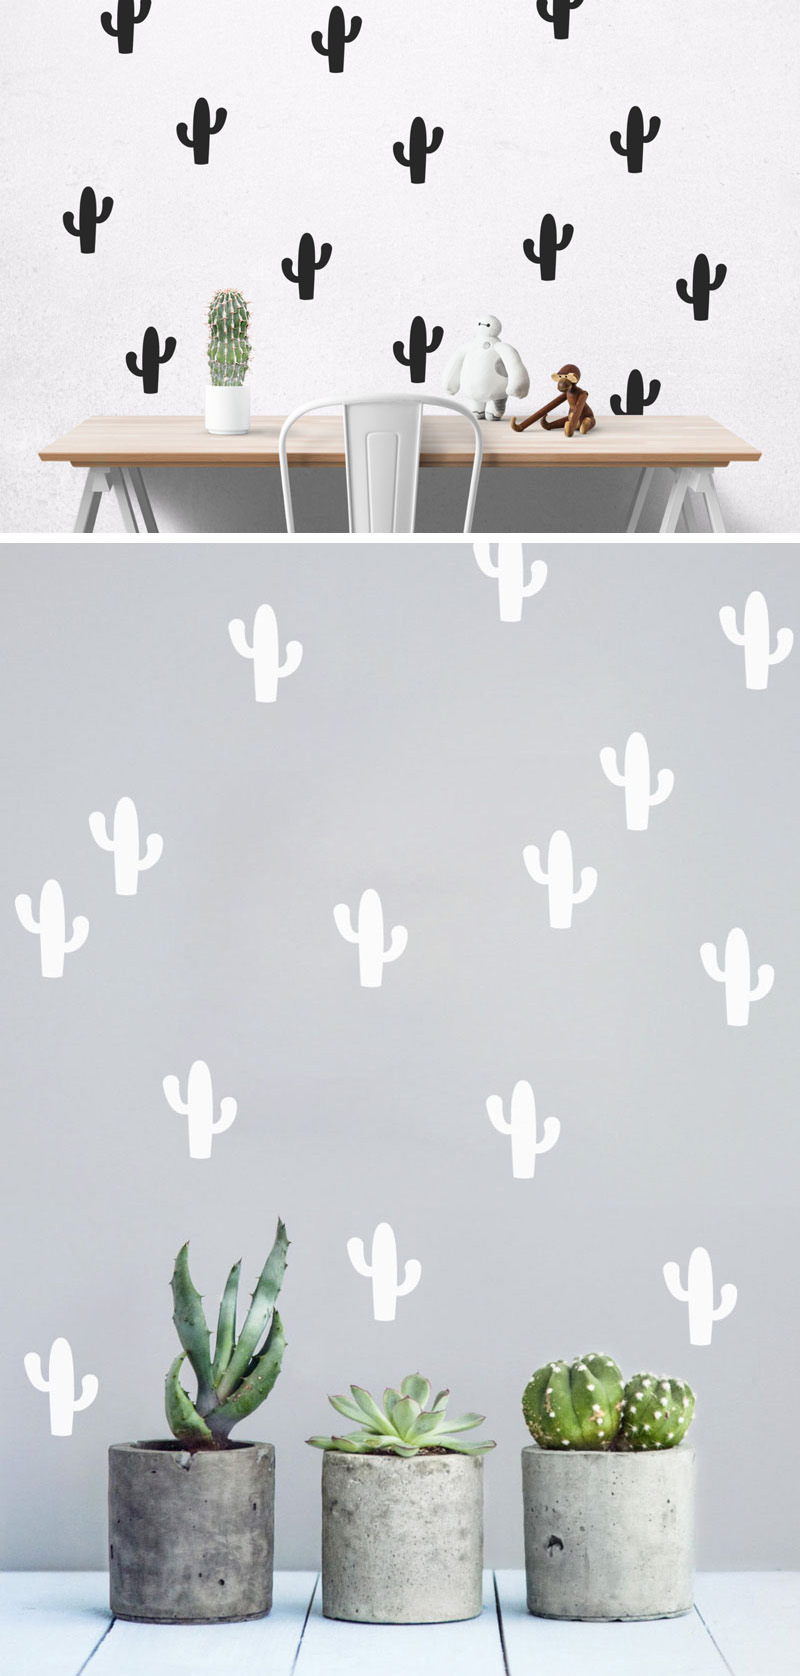 These modern cacti wall decals bring fun to your interior and are an easy way to decorate your walls without leaving marks or holes. #HomeDecor #ModernHomeDecor #Cacti #Cactus #CactiDecor